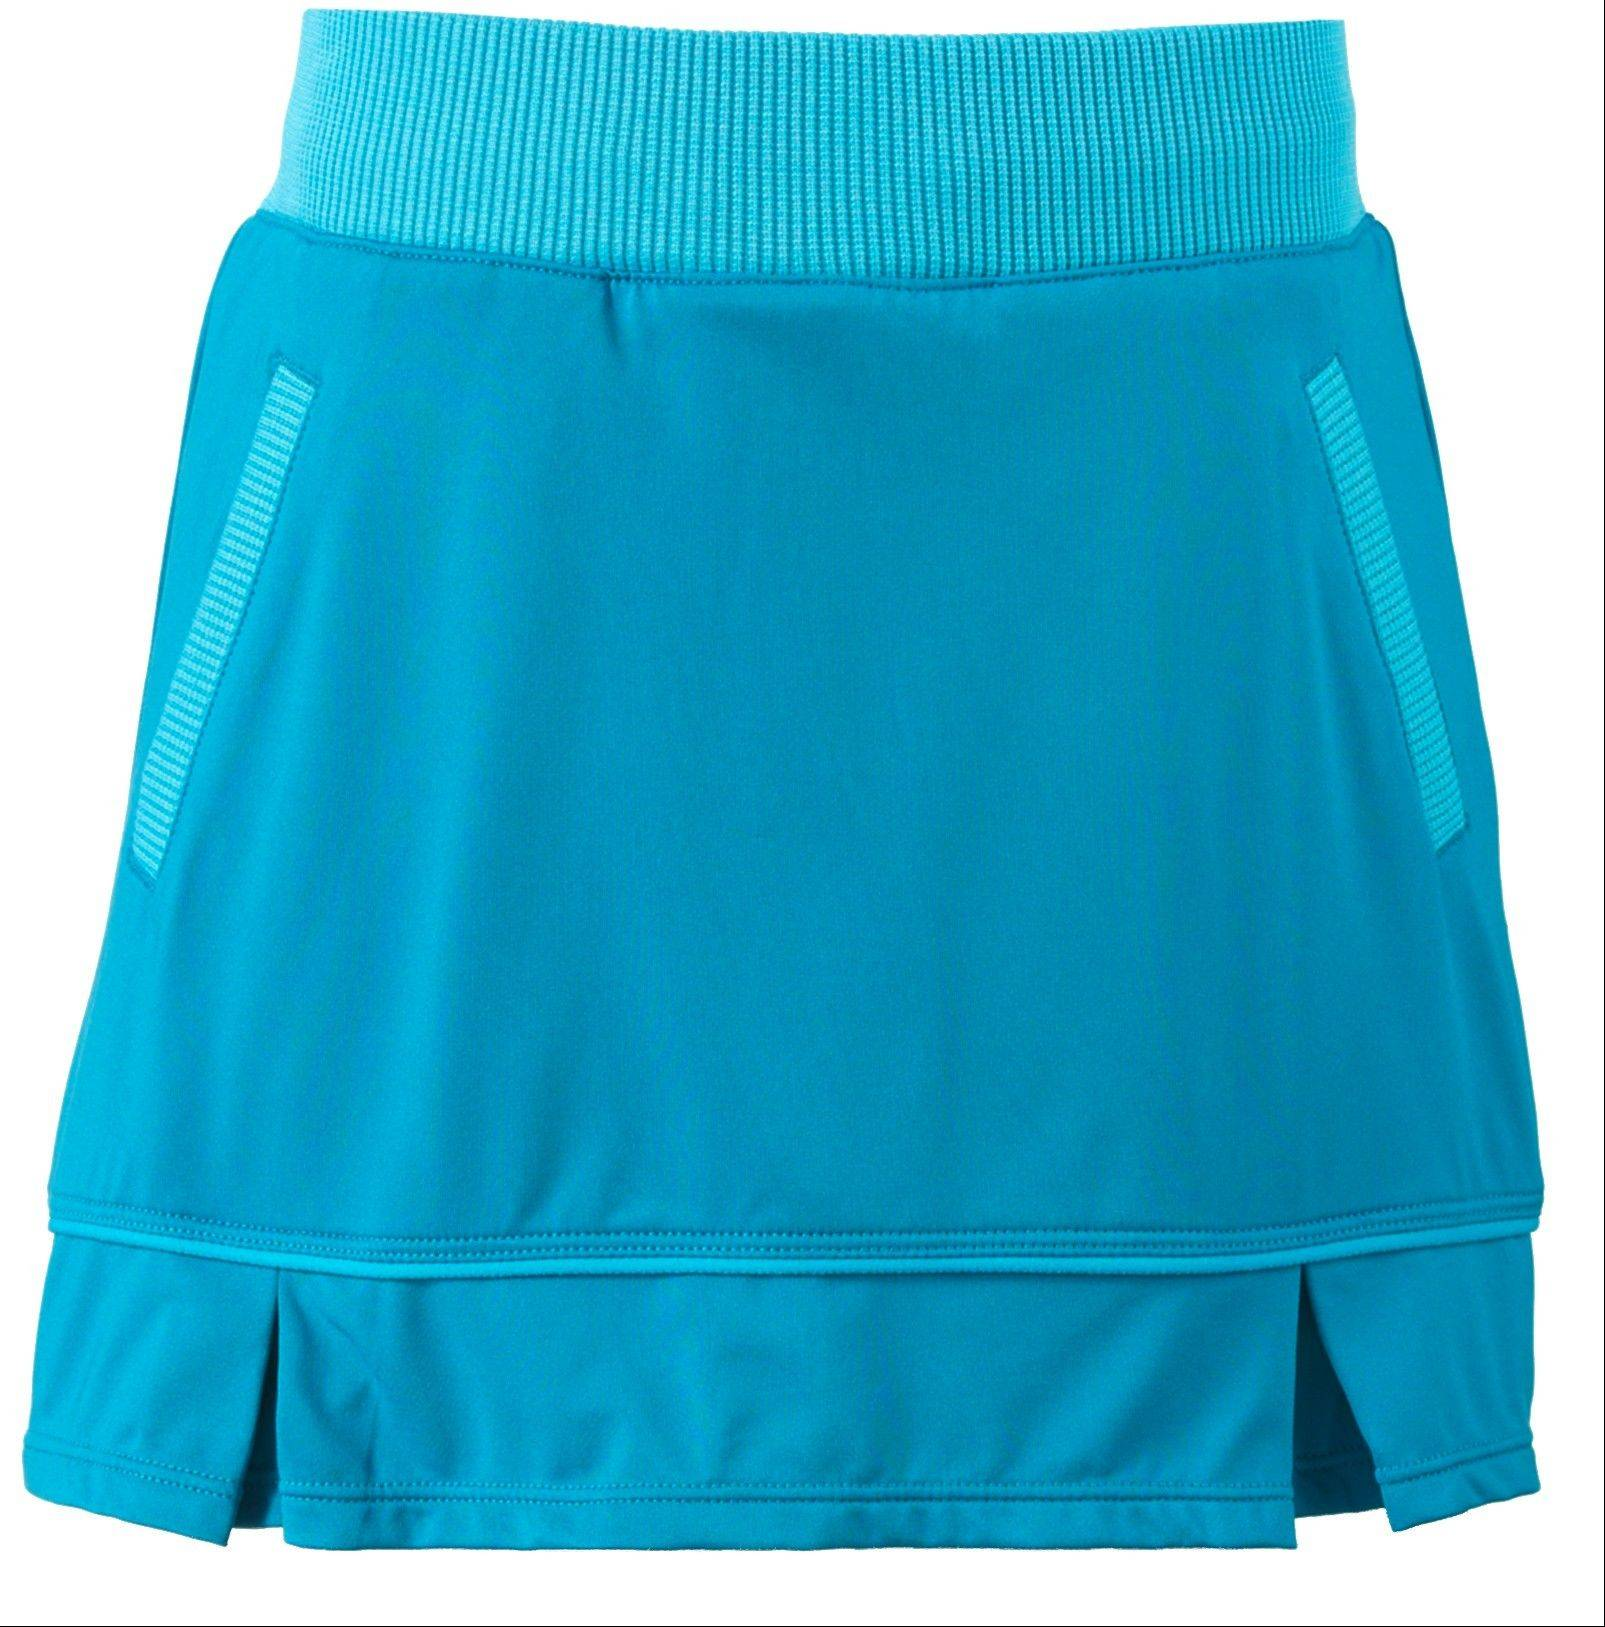 REI Whirligig Skorts for girls. $17.19, REI stores and rei.com.Cute and sun-conscious, these skirted shorts are made of a quick-drying, moisture-wicking stretch fabric that provides UPF 50+ sun protection.